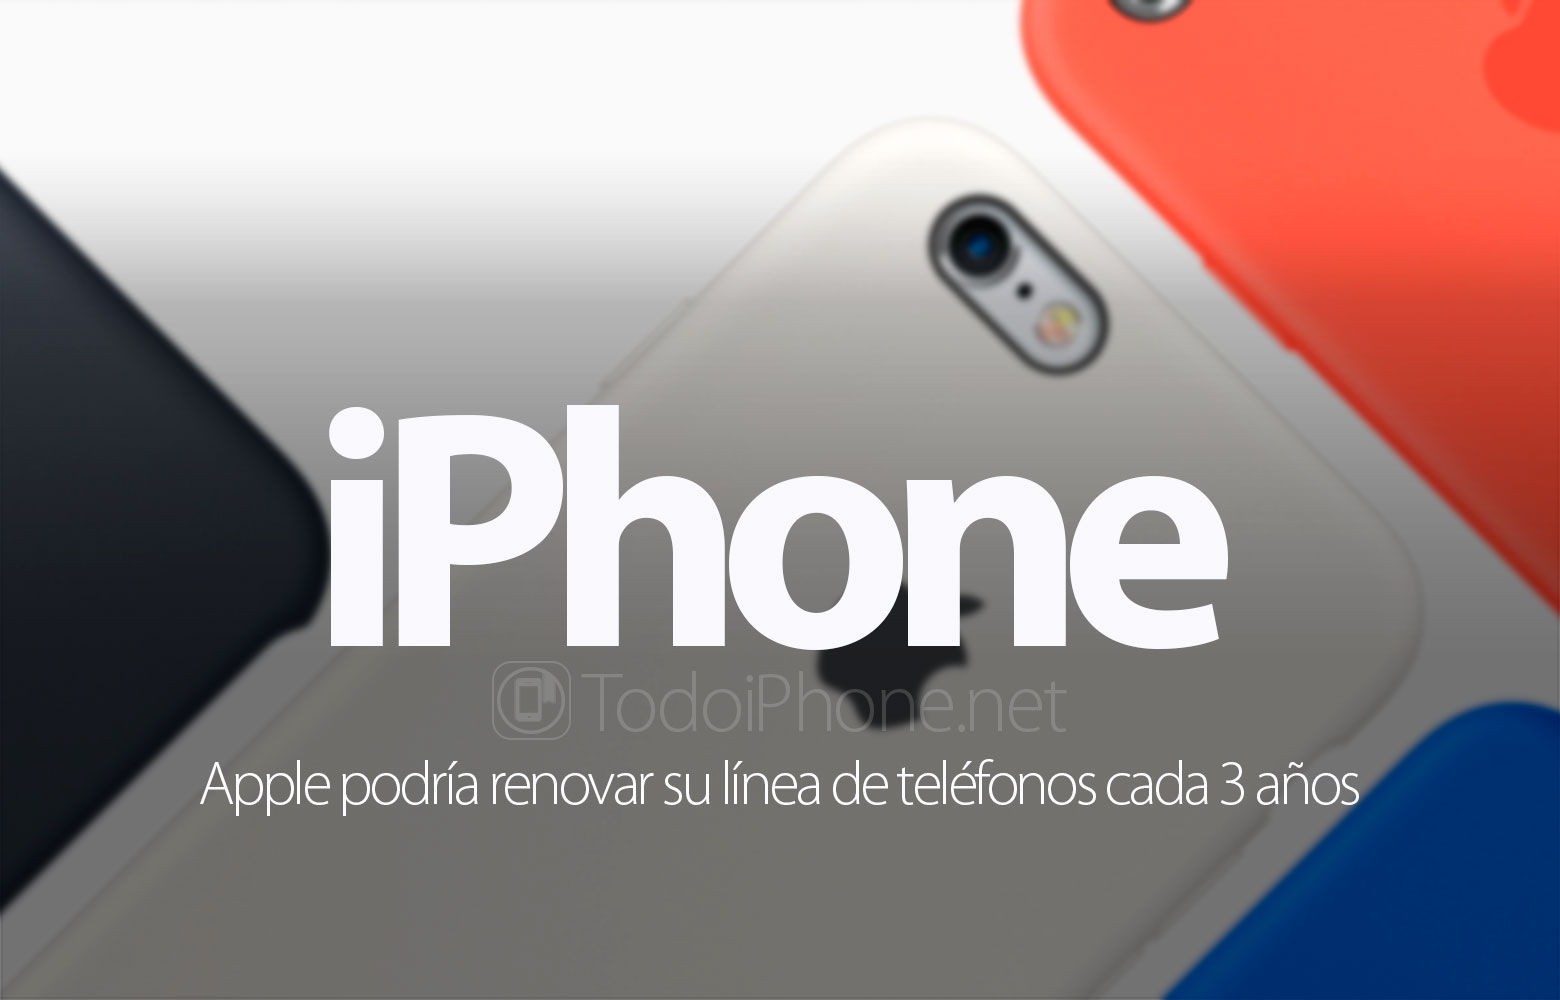 iphone-apple-renovar-linea-telefonos-3-anos